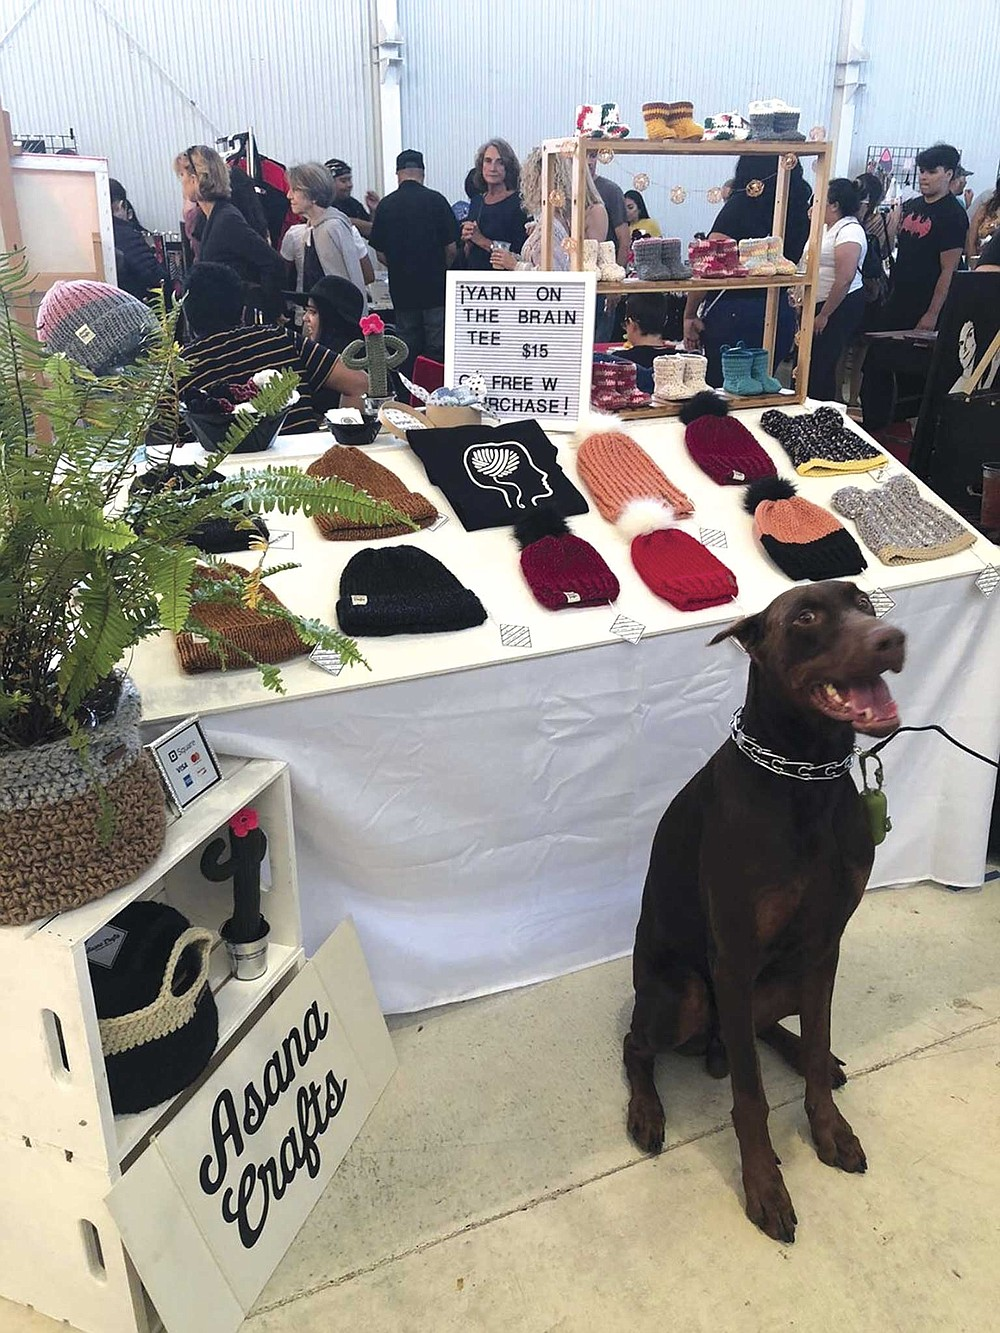 """La Pulga Holiday Market will be a place to locally shop specifically for holiday gifts. They are promising """"shoes, toys, art, plants, bags, hats, candles, body care, and so much more."""""""